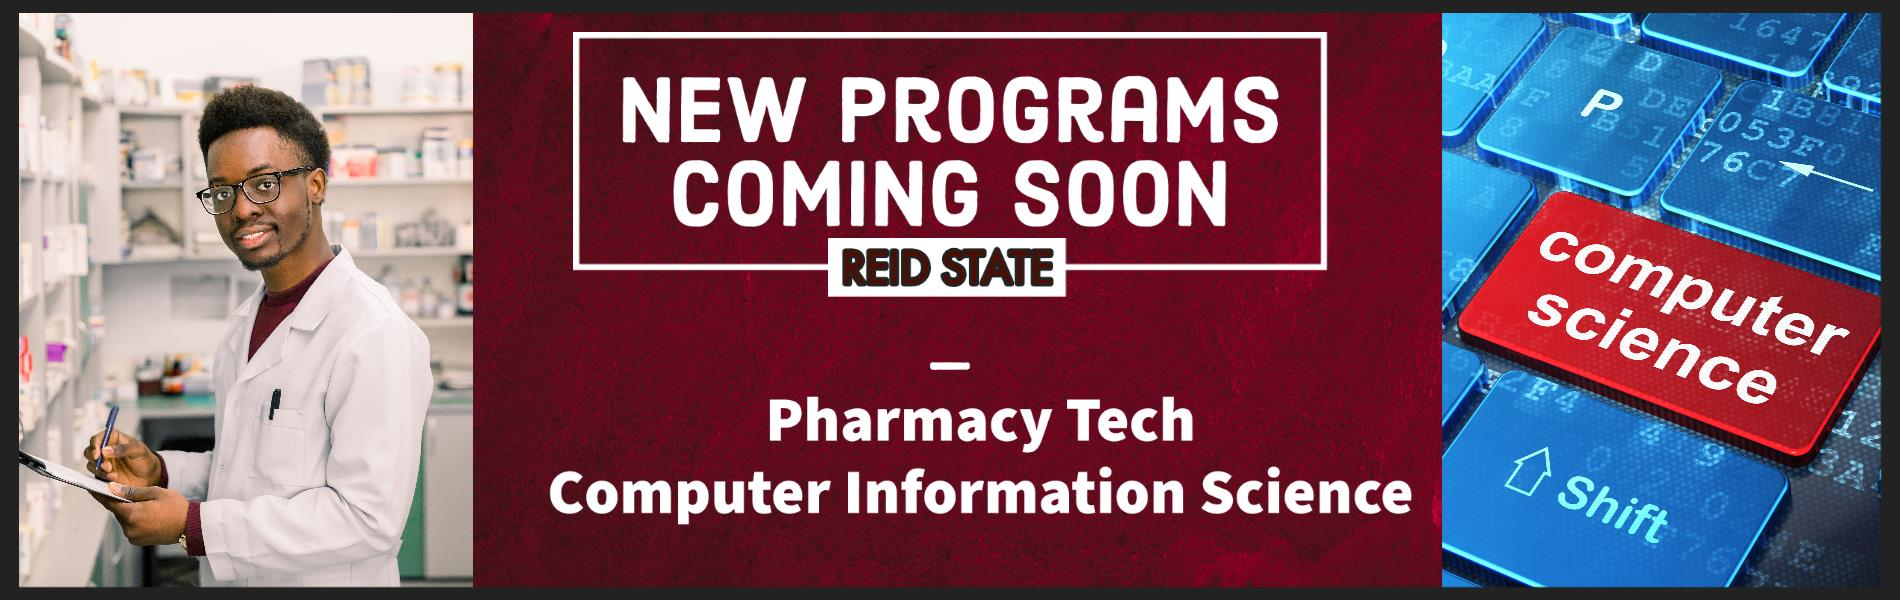 New Programs Coming Soon